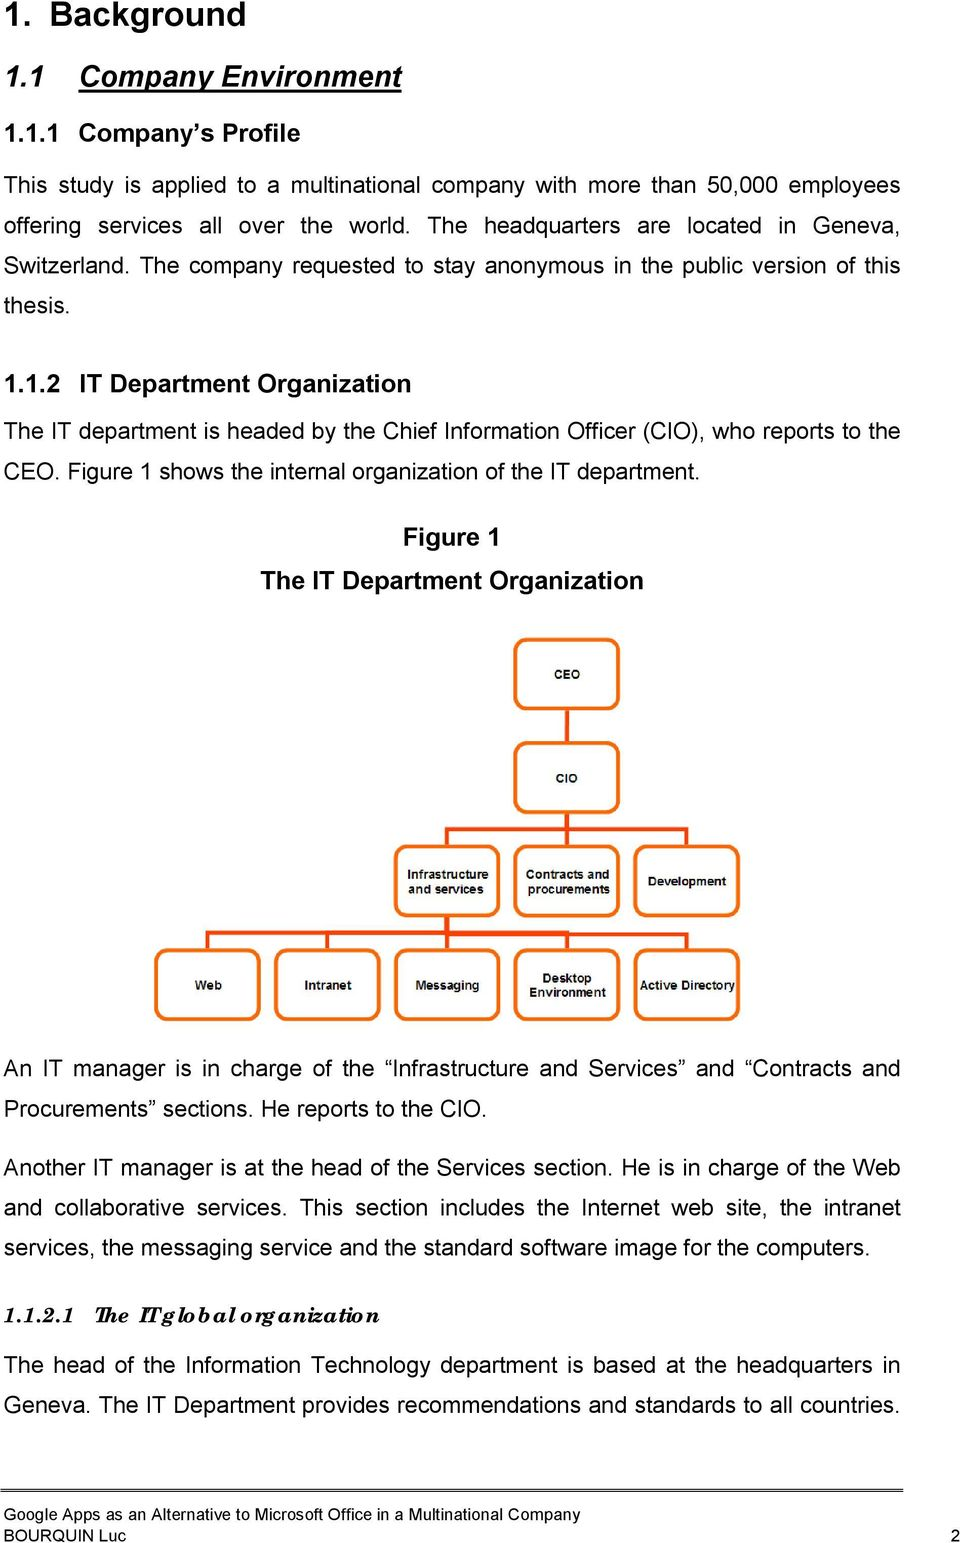 1.2 IT Department Organization The IT department is headed by the Chief Information Officer (CIO), who reports to the CEO. Figure 1 shows the internal organization of the IT department.